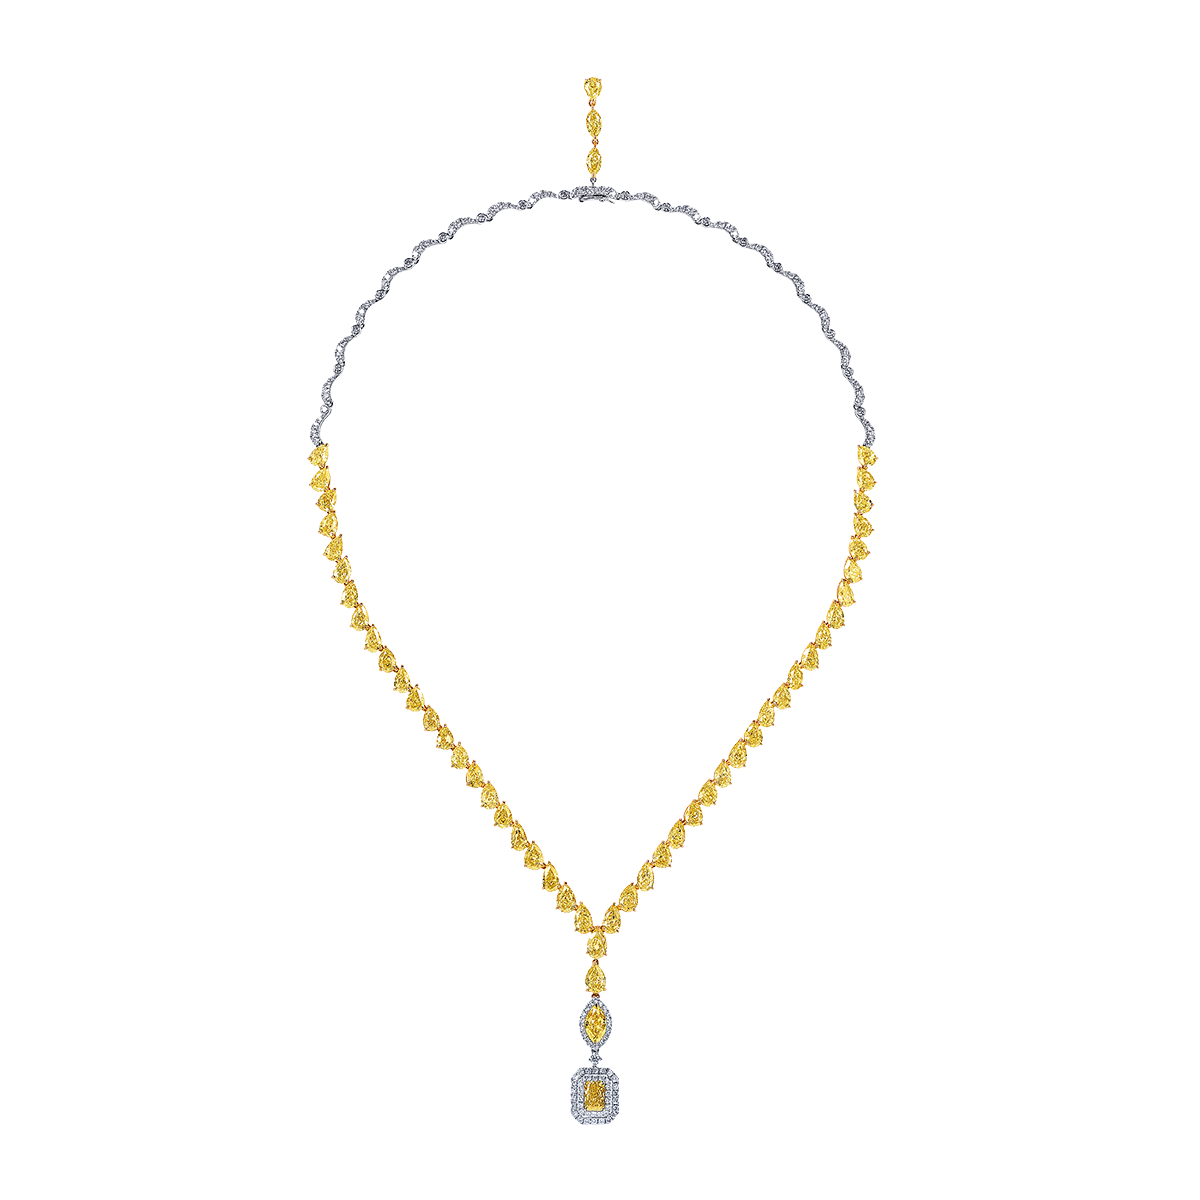 GIA 濃彩黃鑽套鍊 27.302克拉